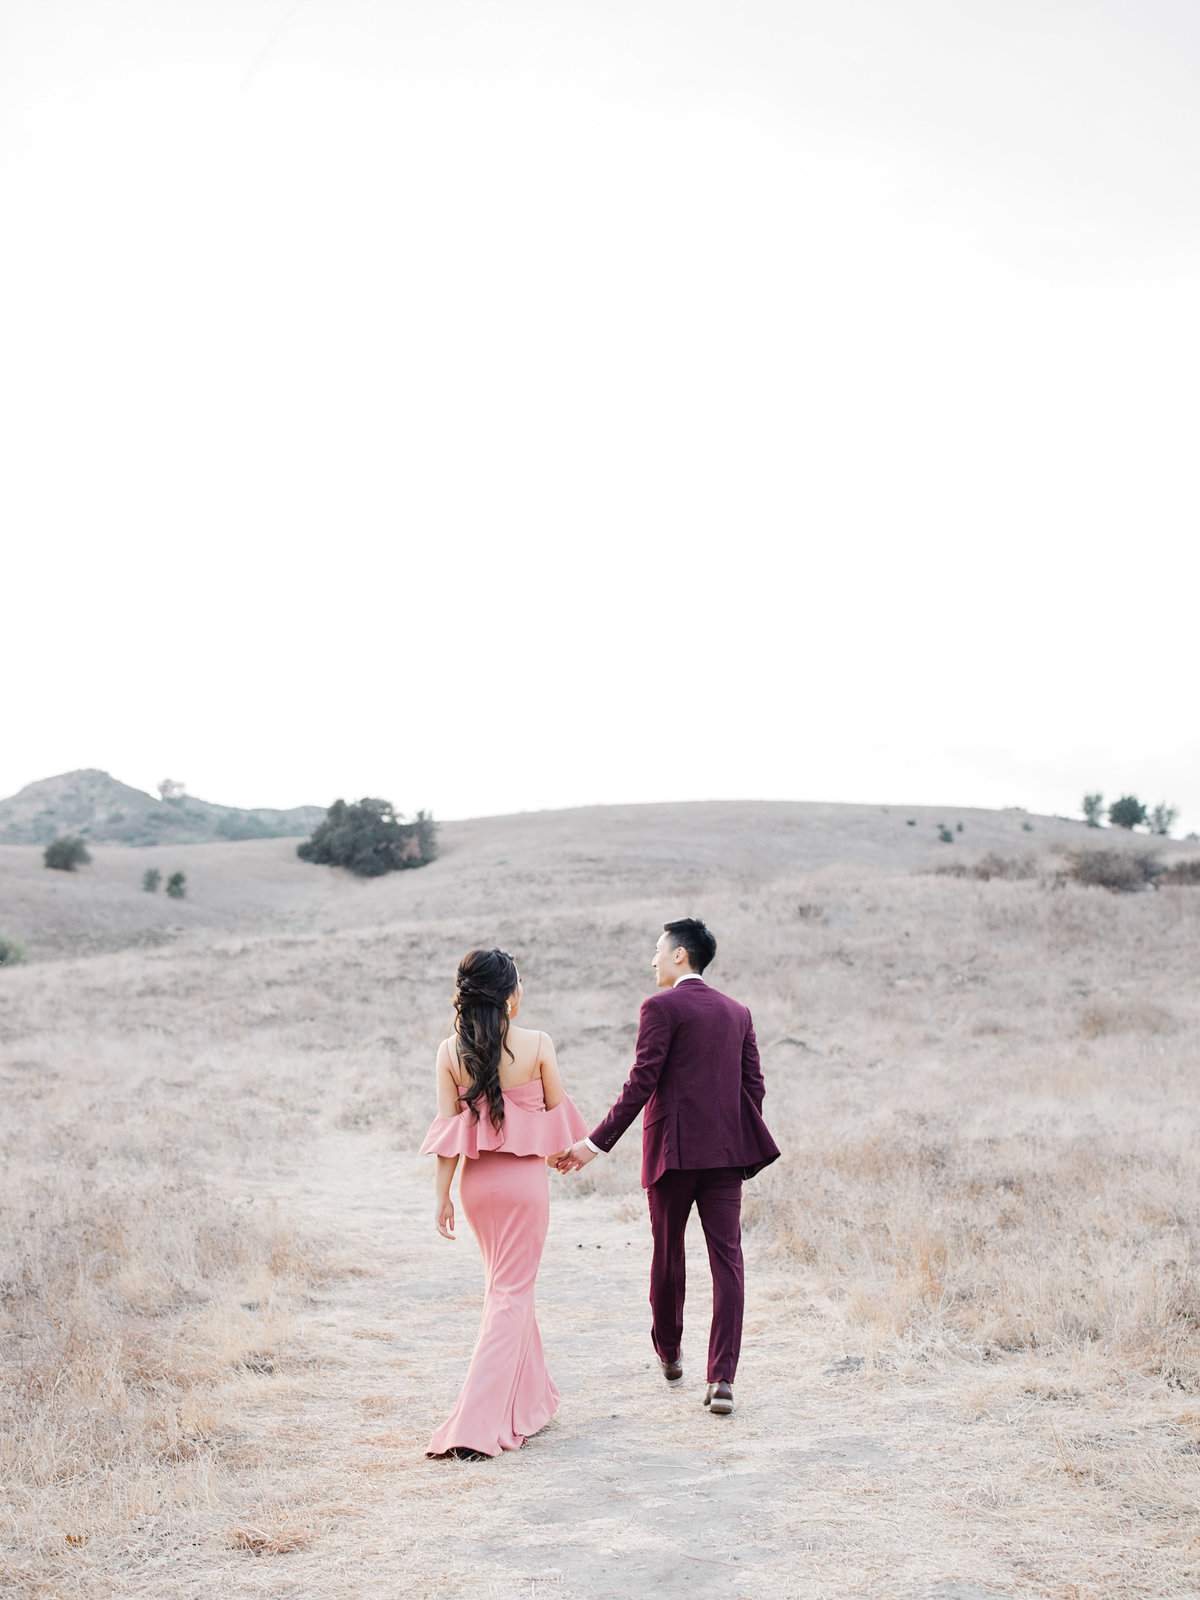 Babsie-Ly-Photography-fine-art-film-destination-engagement-photographer-orange-county-irvine-california-asian-hong-kong-bride-004